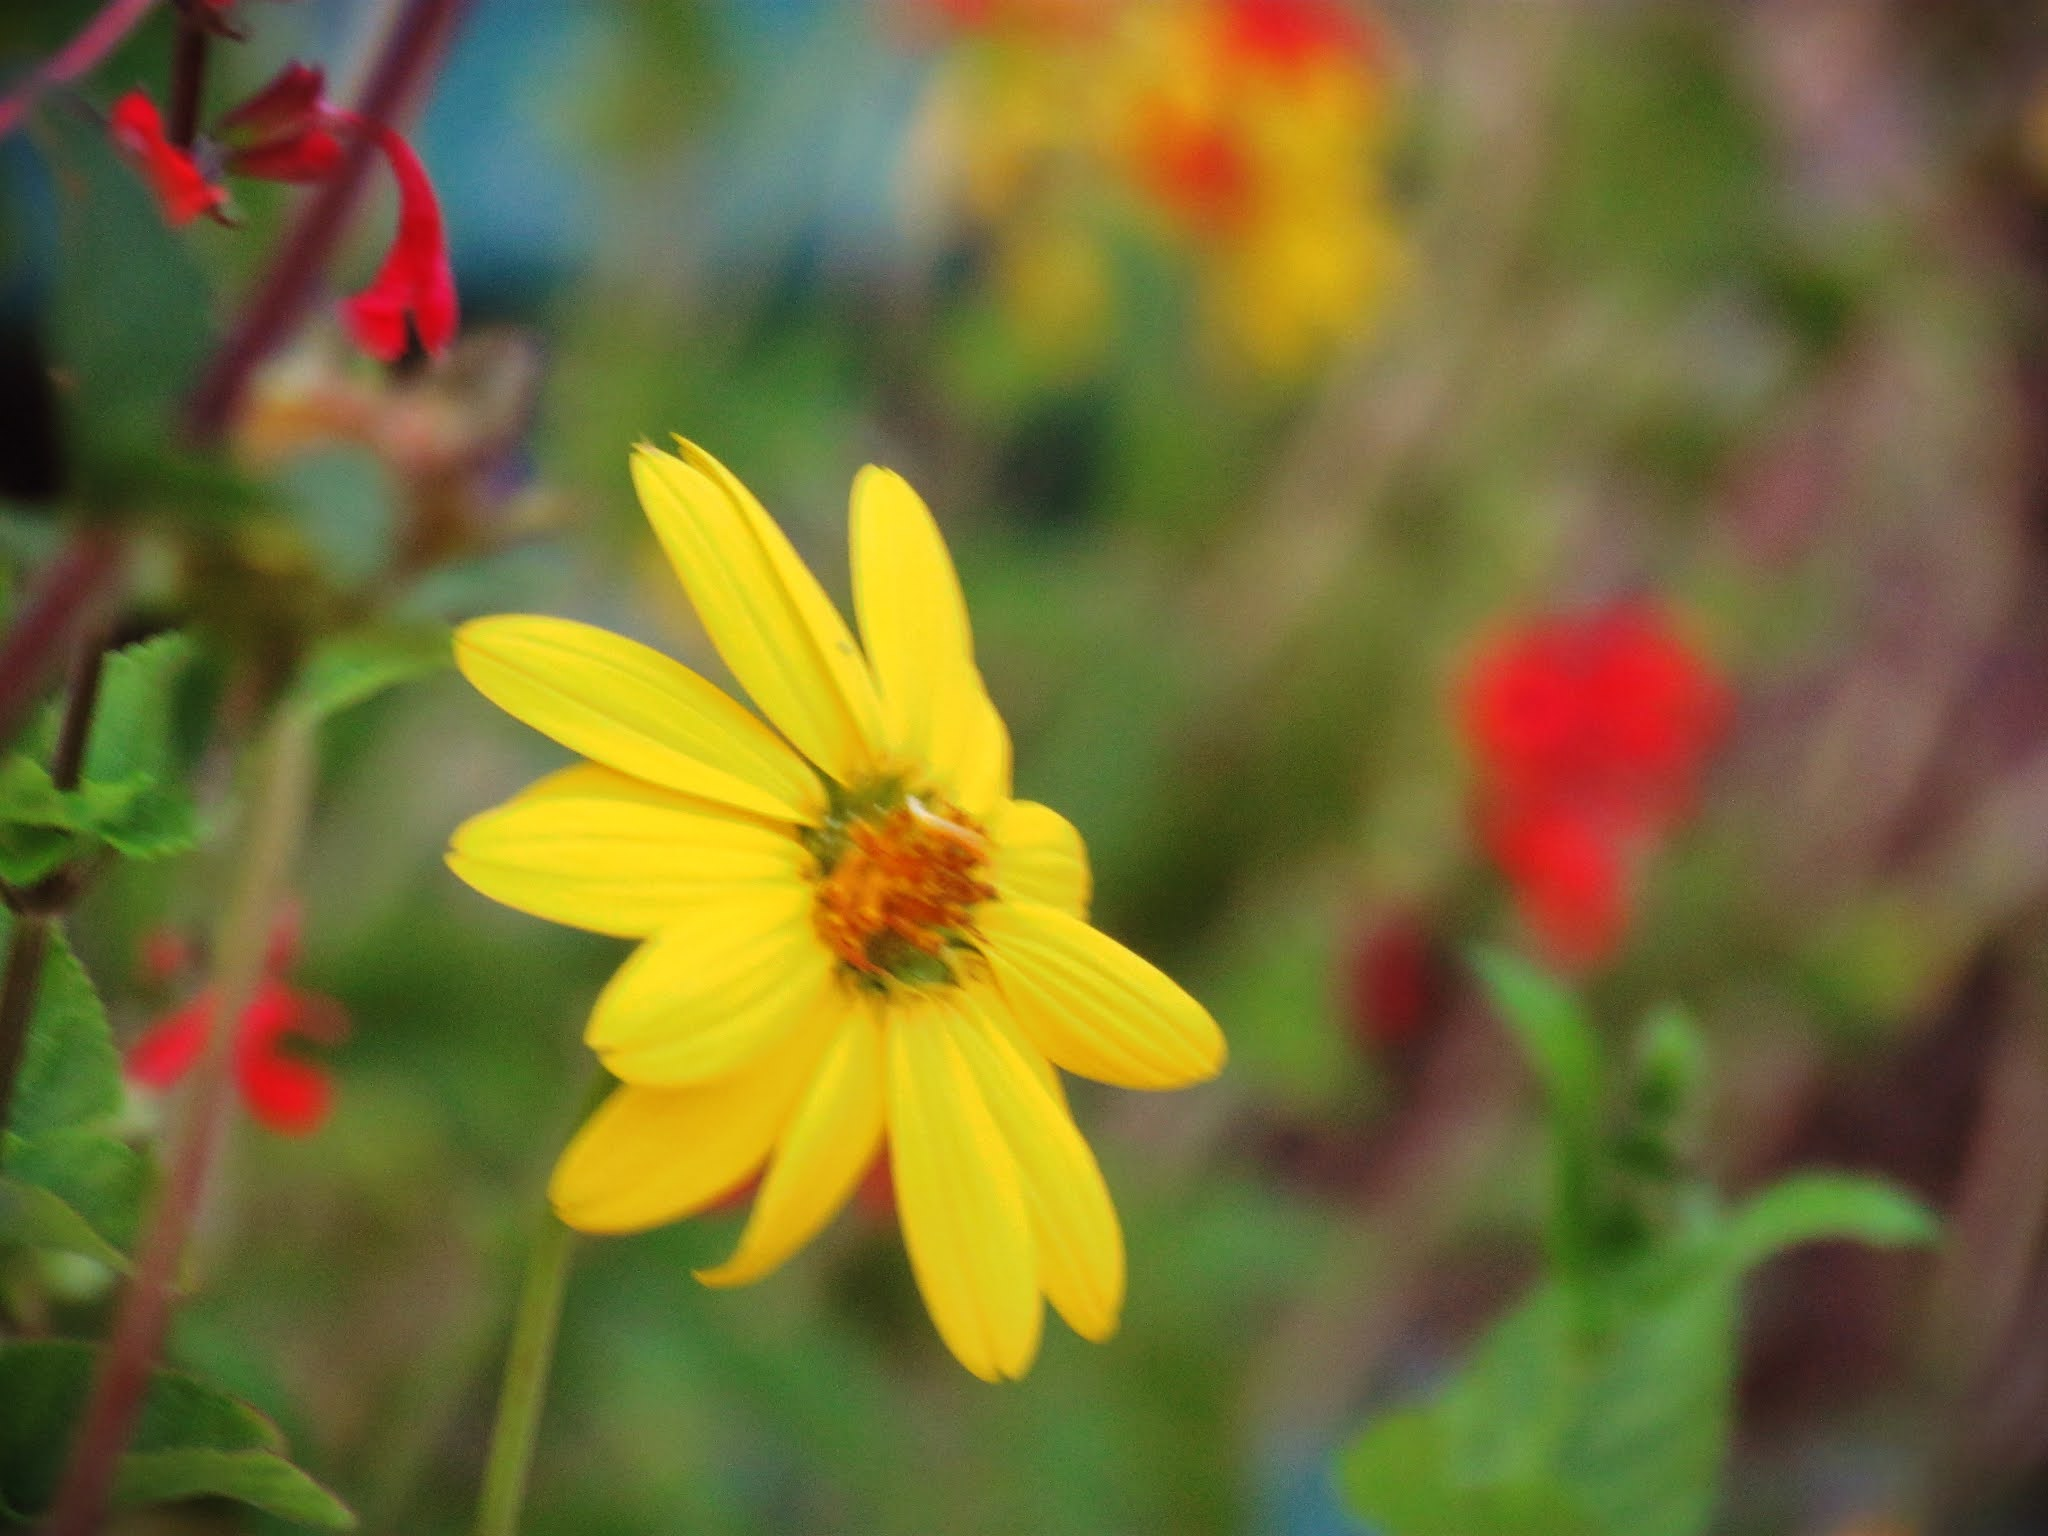 Blurred photography summer meadow photo with colorful flowers bursting to life in a botanical garden of simple delights in Florida